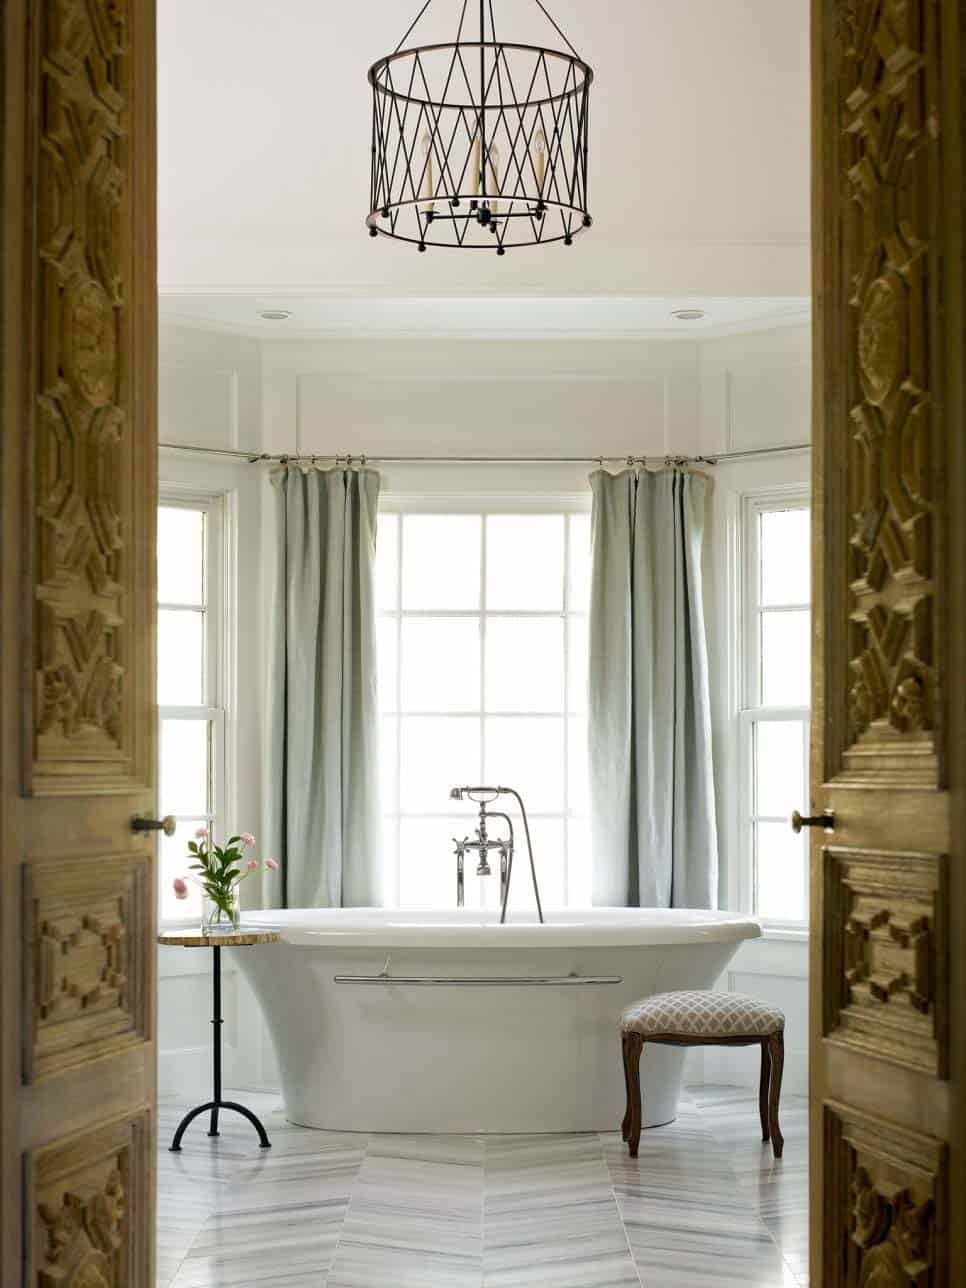 Freestanding-Tubs-Bathroom-Ideas-18-1 Kindesign